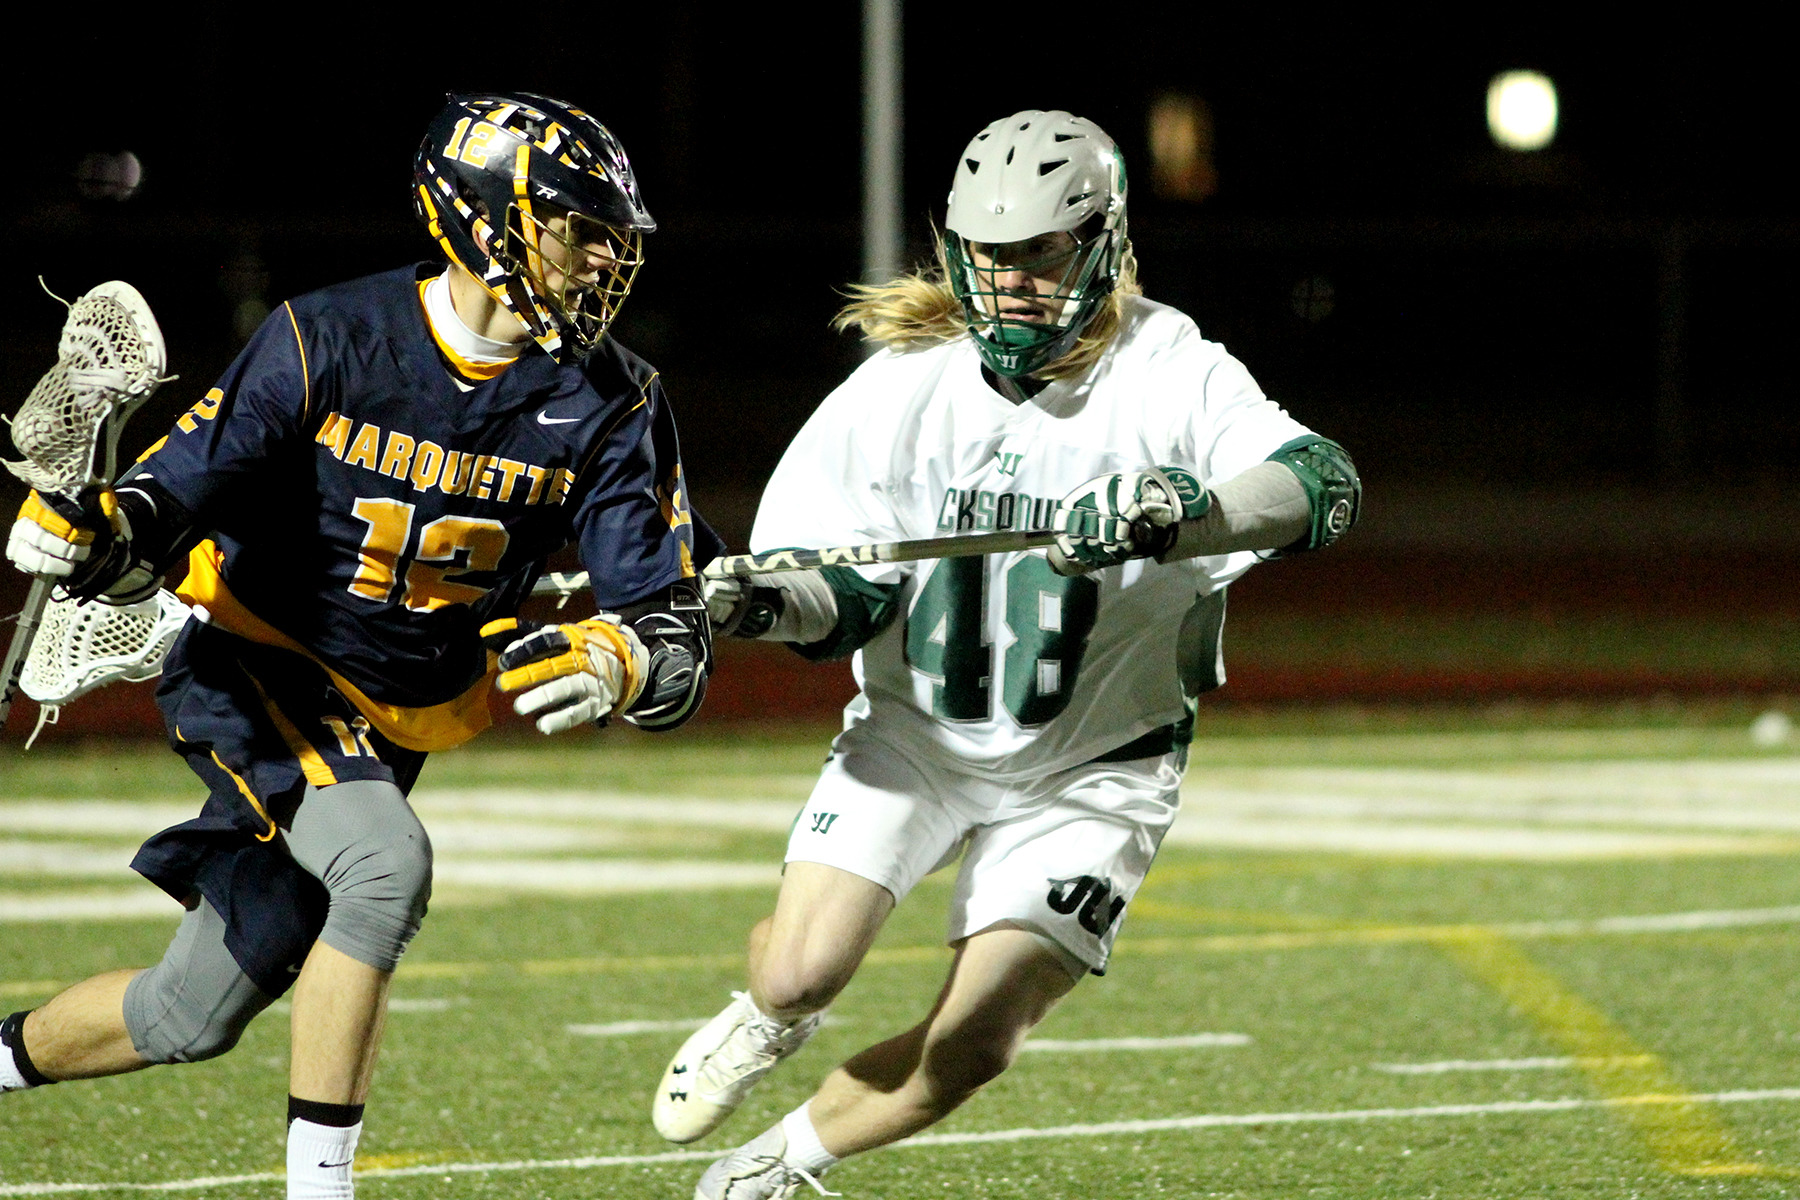 Conor Gately's Marquette single-game record five assists came at Mercer in 2013 (photo: Harry Archer).